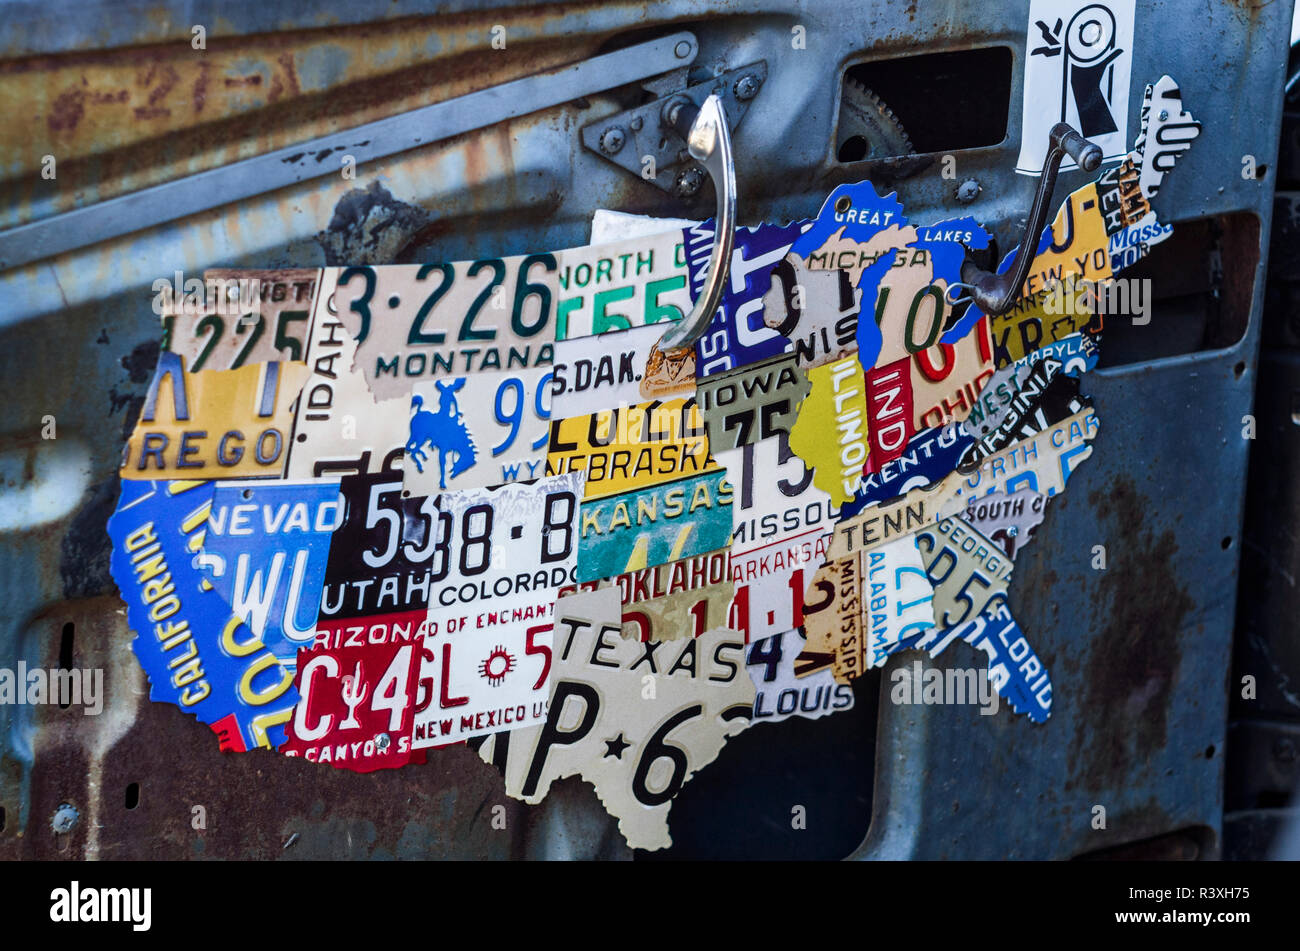 Us Map Made Out Of License Plates.1950s Car Interior With Us Map Made Of License Plates Stock Photos